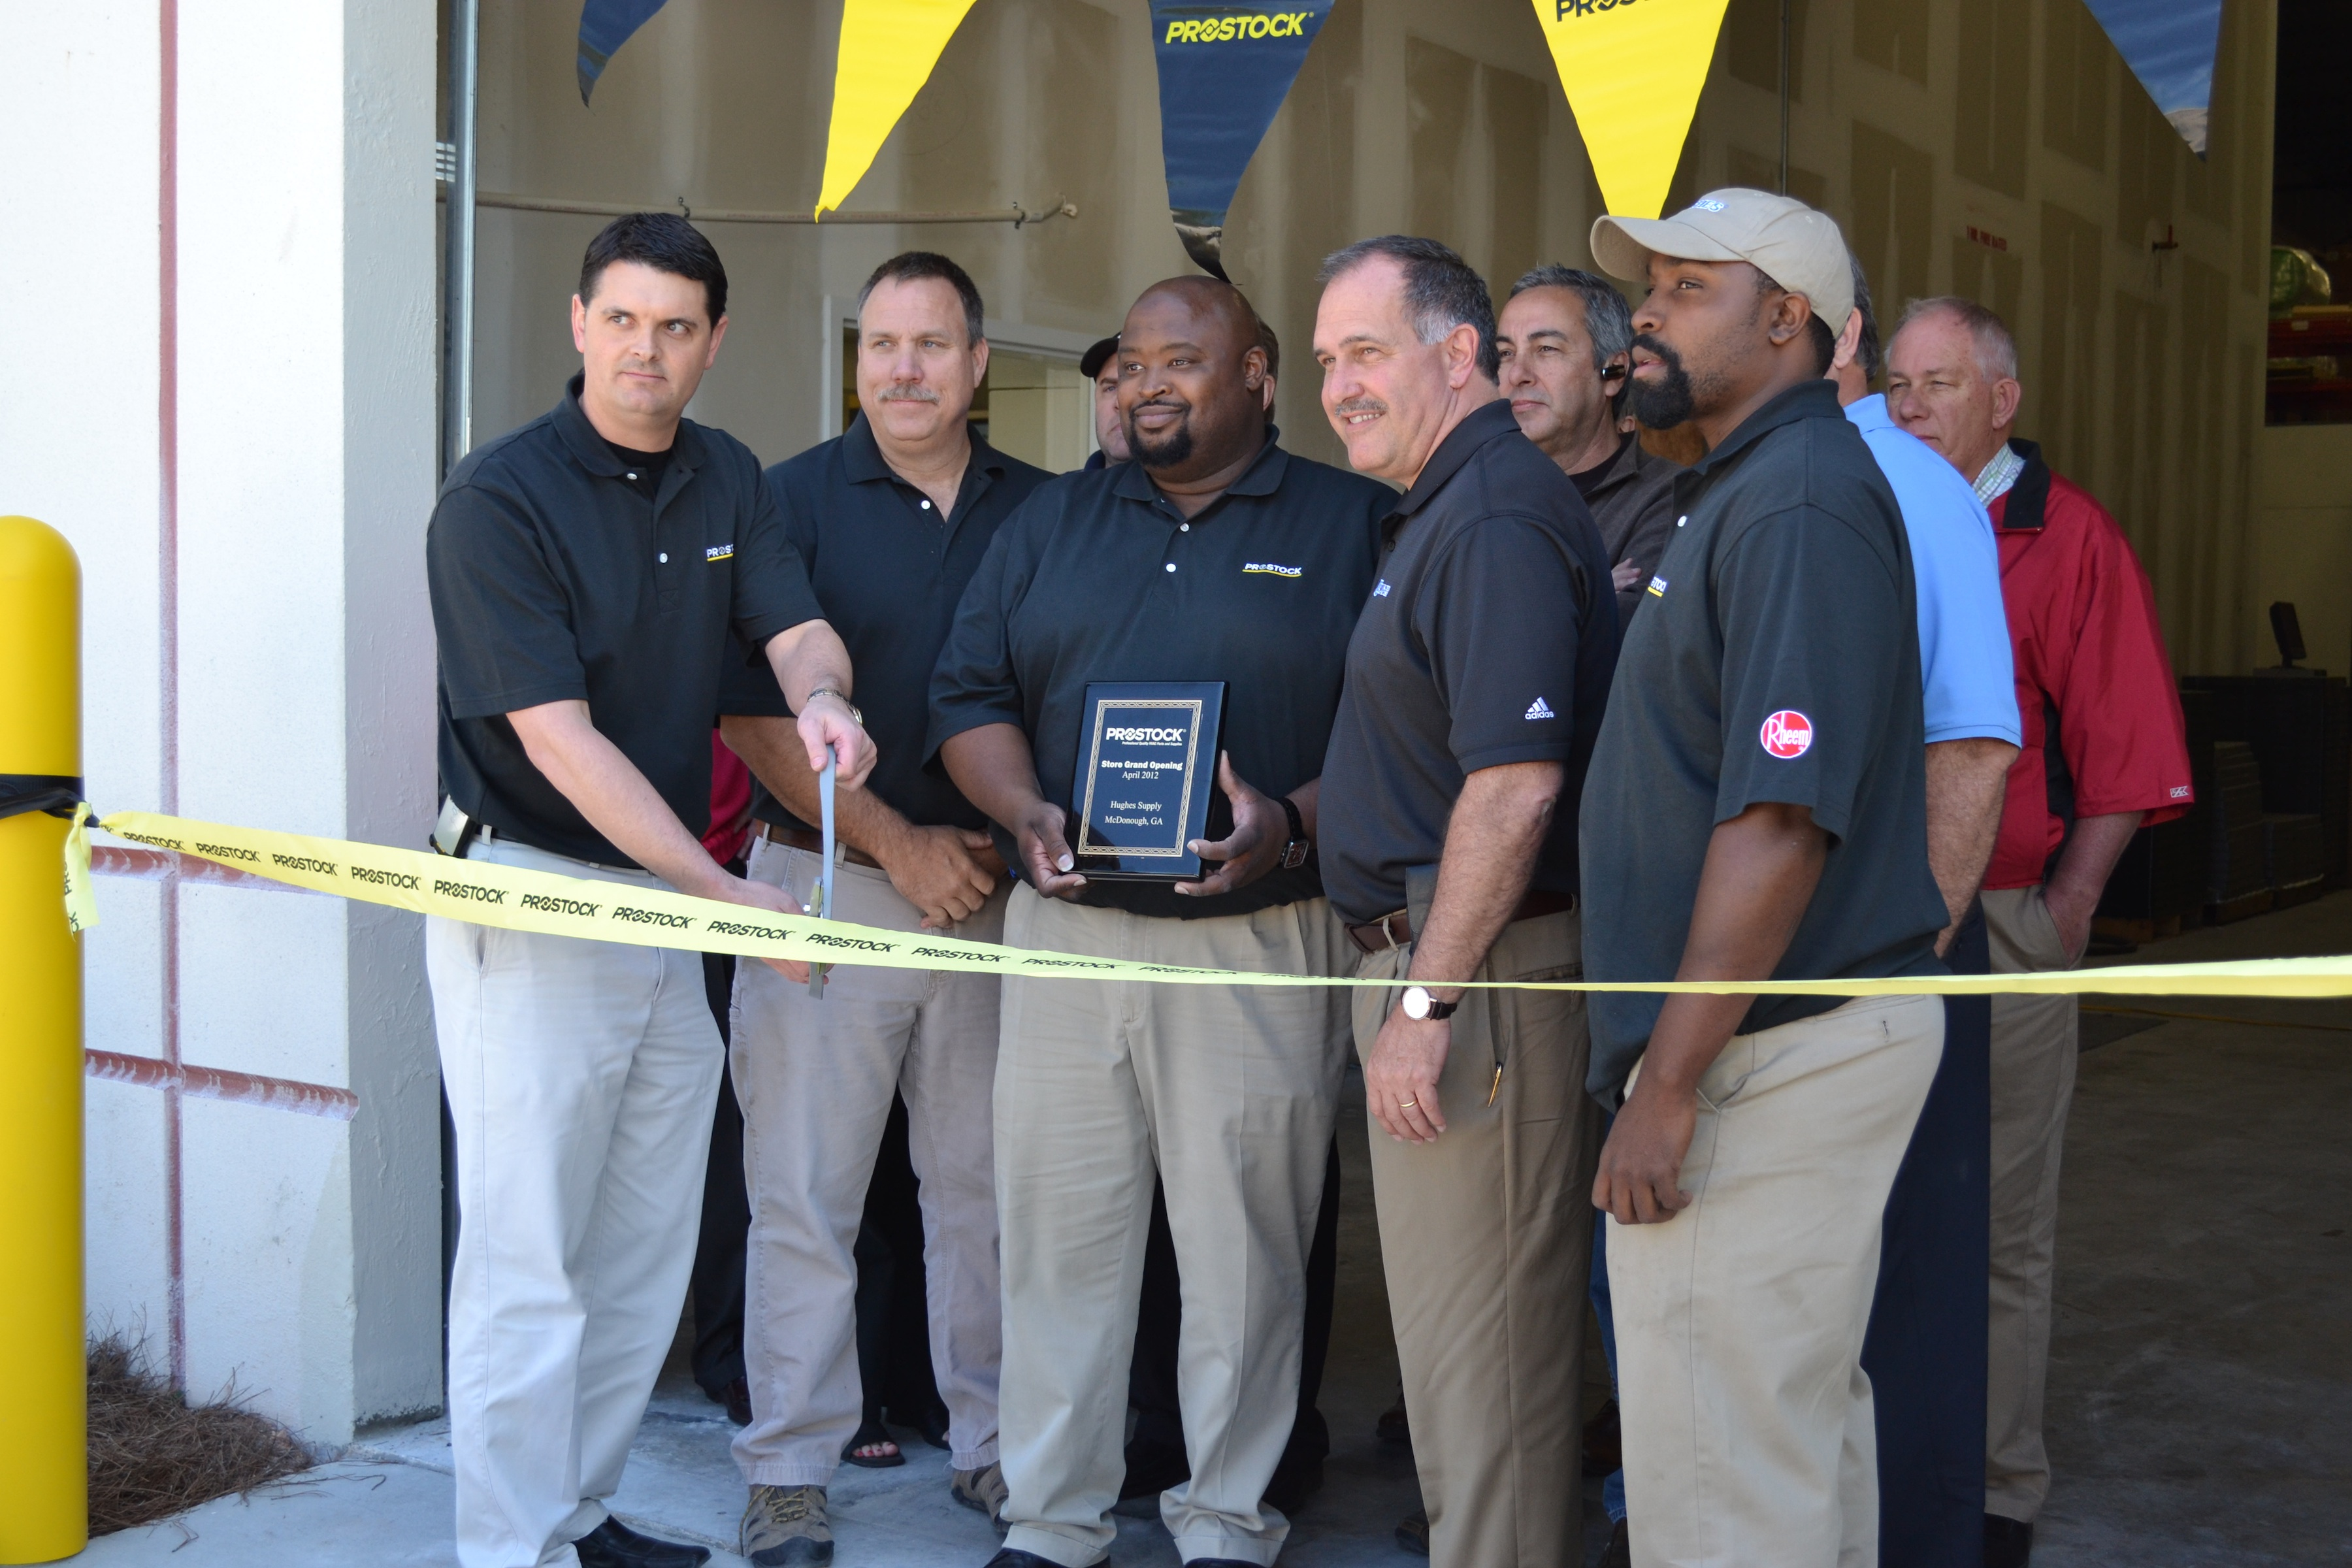 Rheem Opens A New Prostock Store South Of Atlanta With